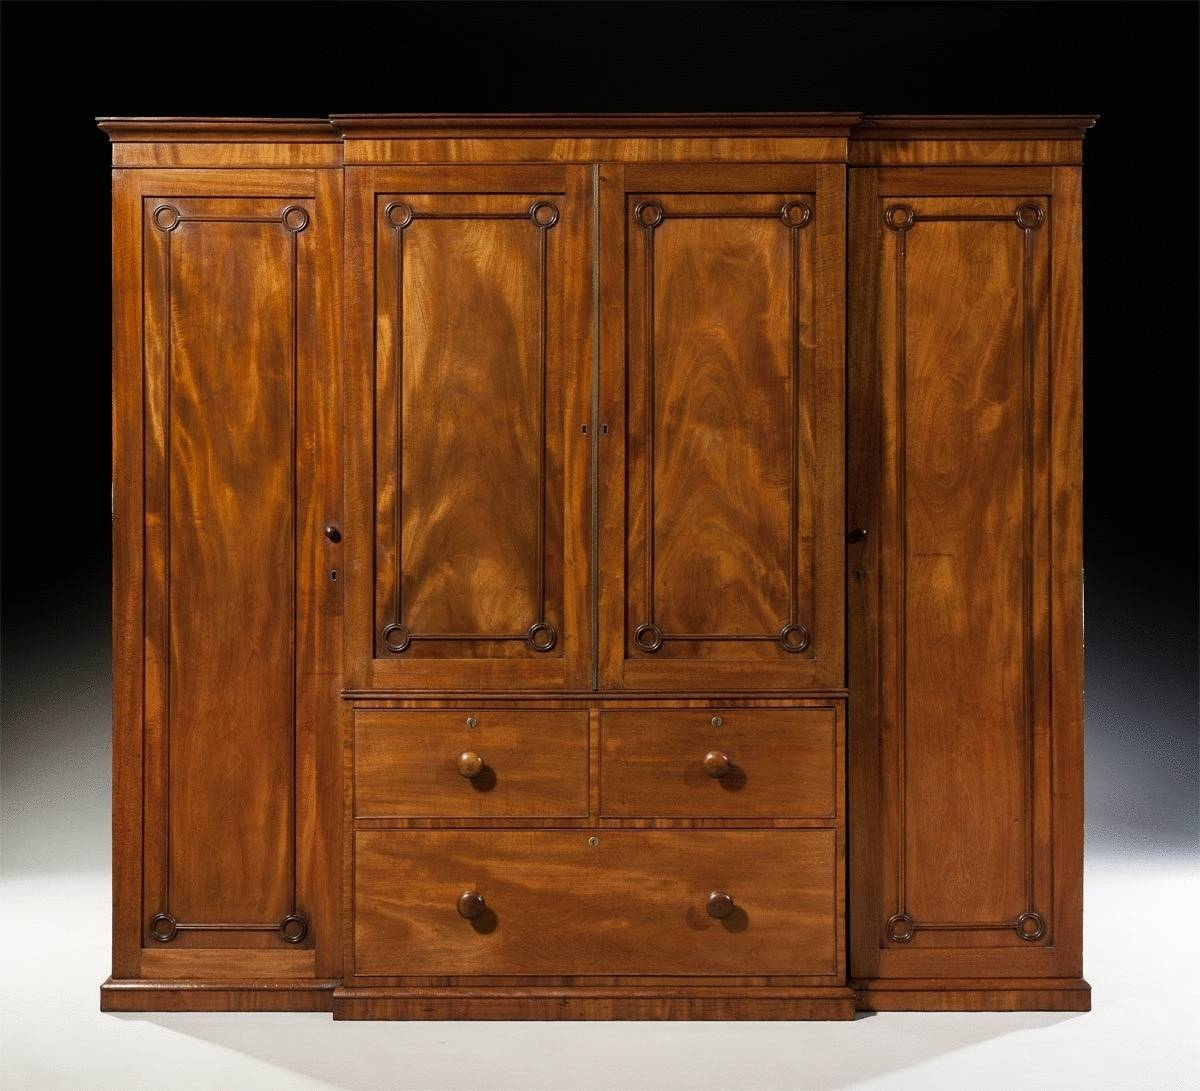 Small Antique Regency Breakfront Mahogany Gentleman's Wardrobe (C within Mahogany Breakfront Wardrobe (Image 14 of 30)